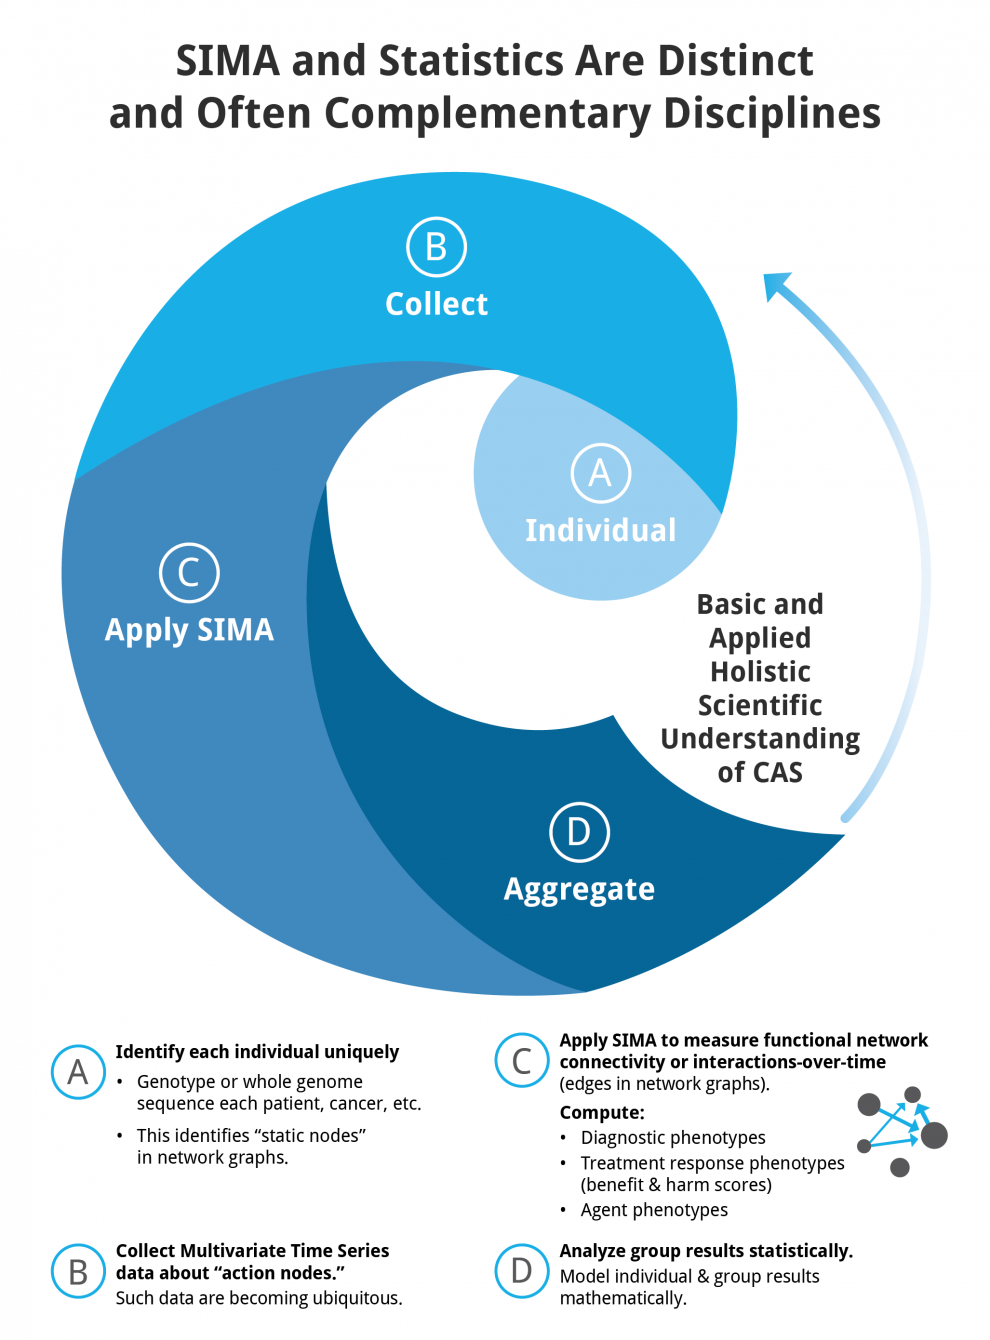 SIMA and statistics are distinct and complementary disciplines